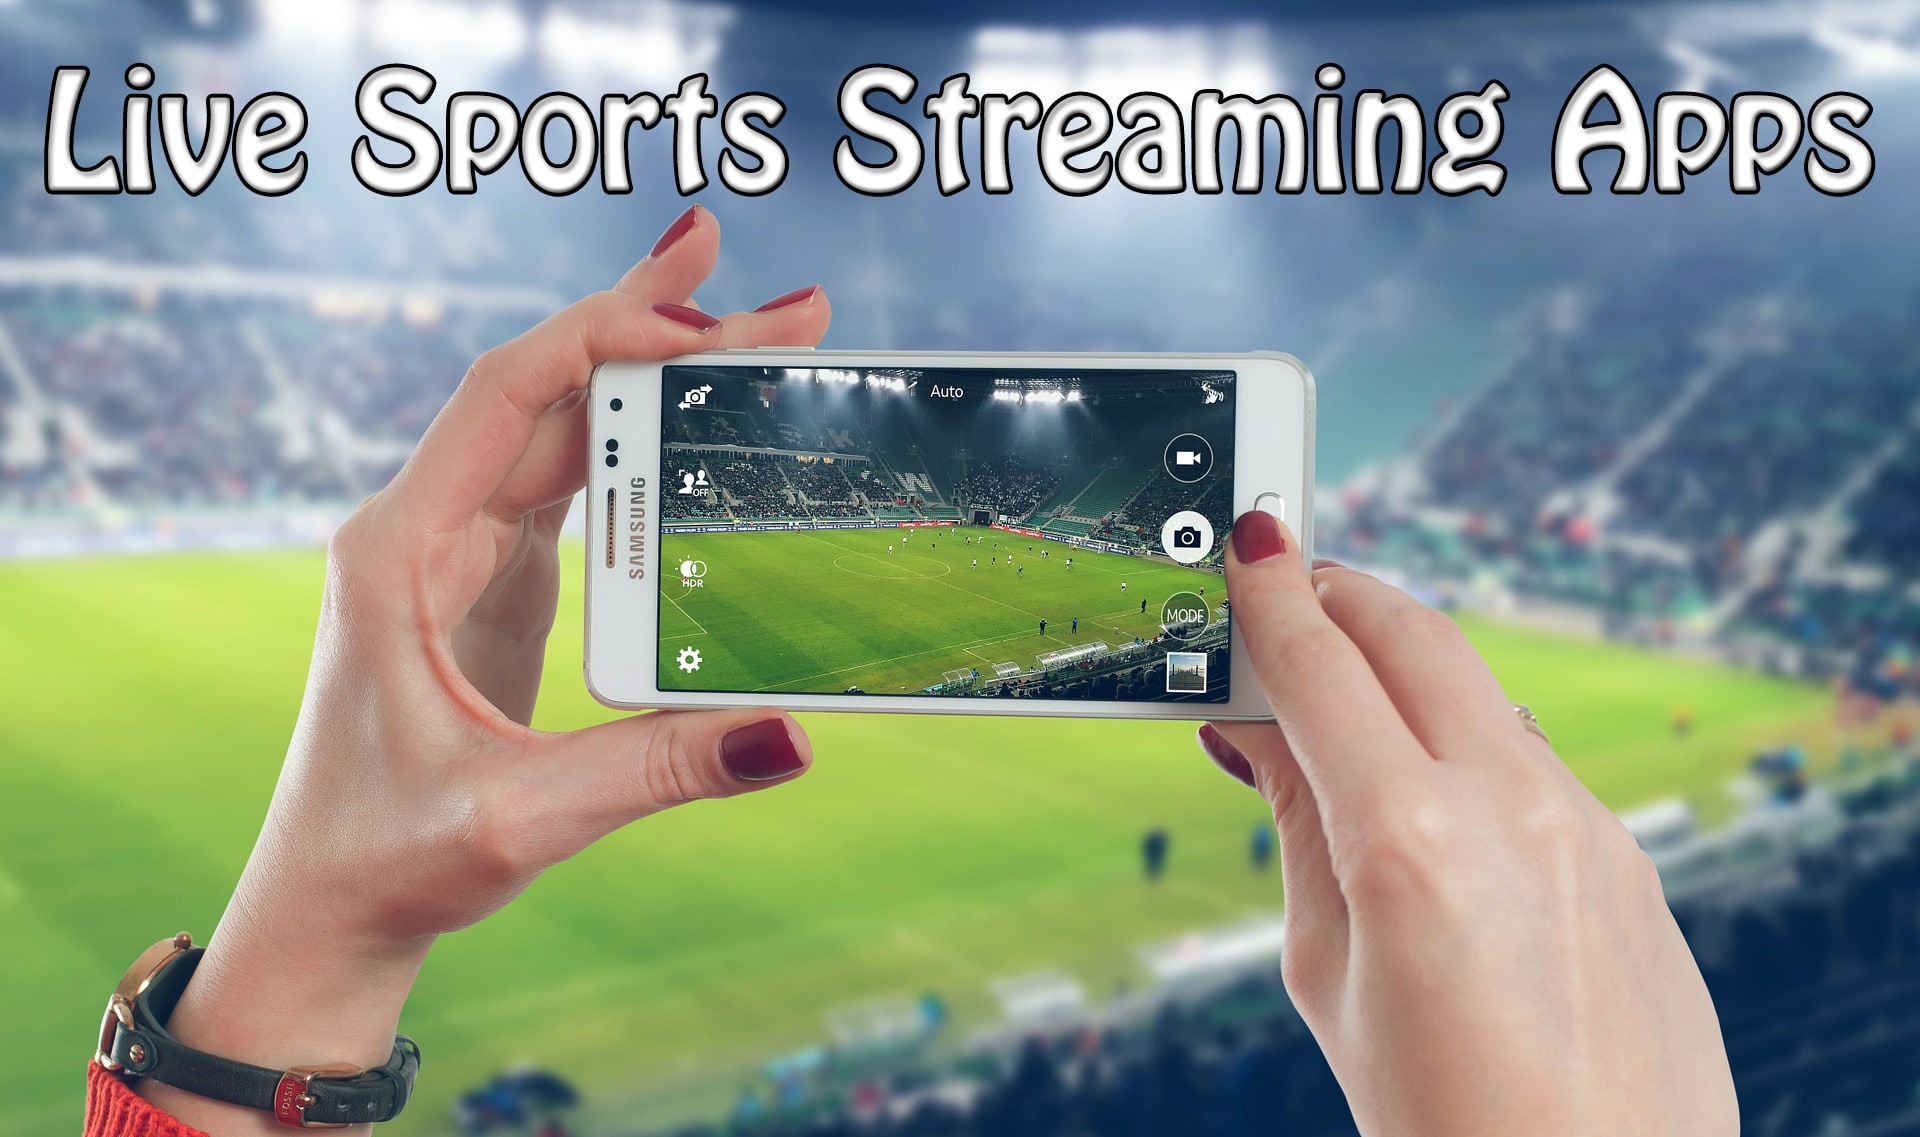 Live Sports Streaming Apps